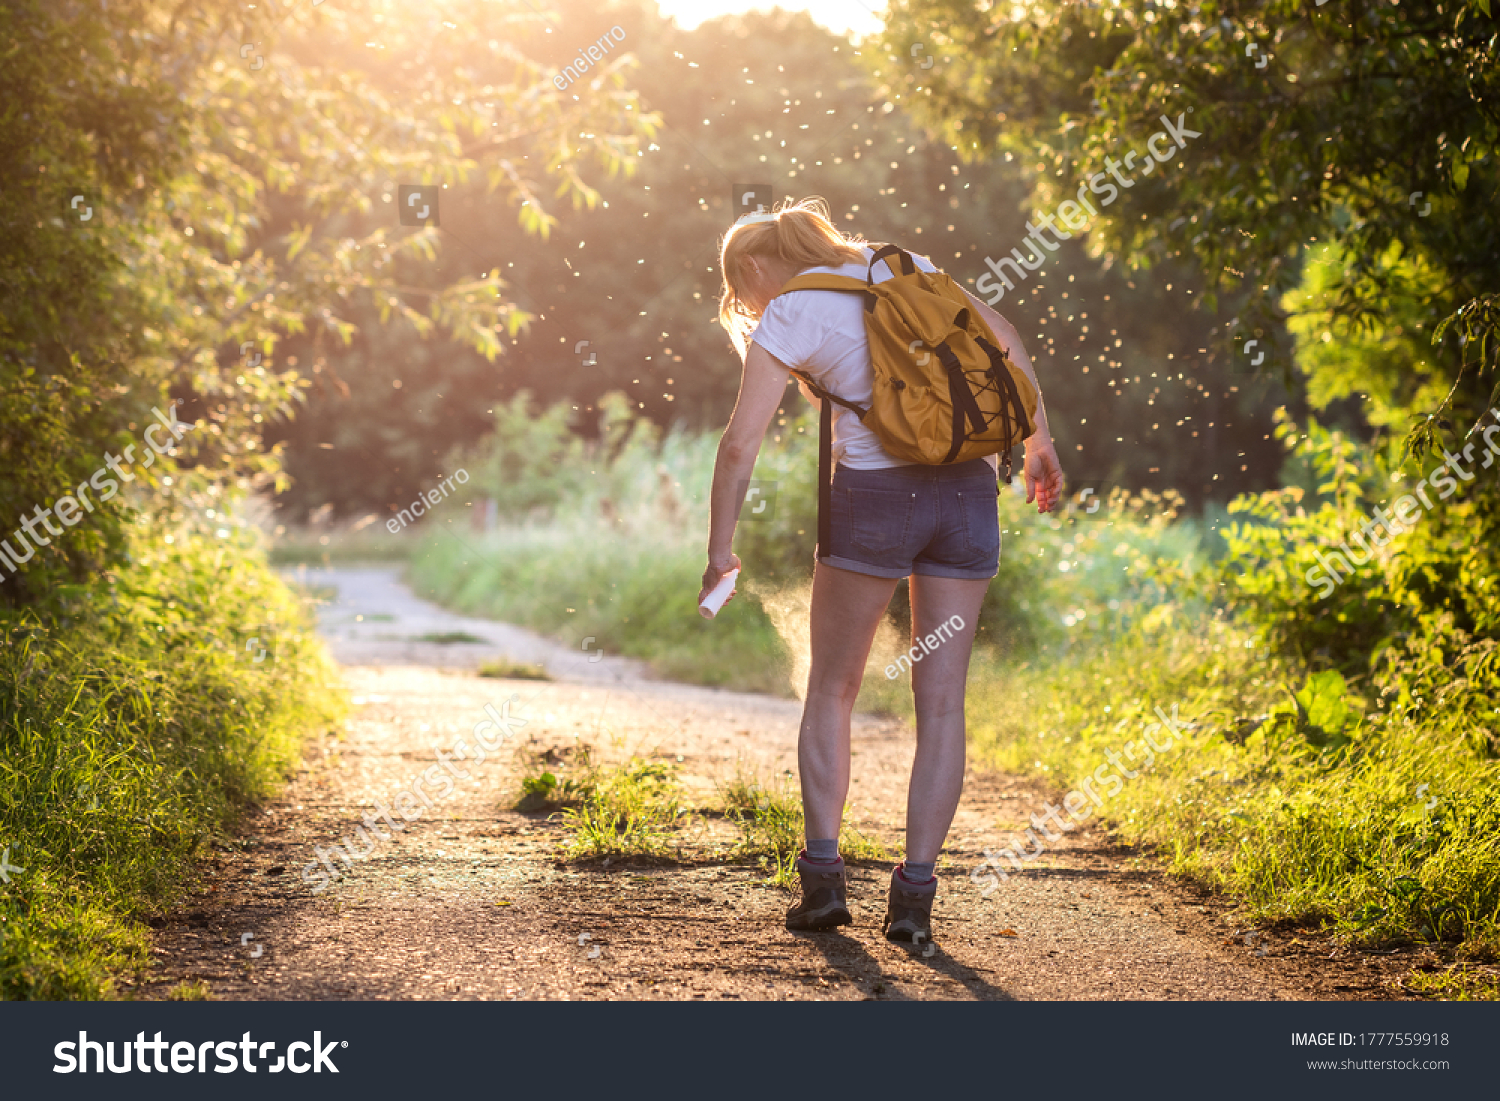 Woman applying insect repellent against mosquito and tick on her leg during hike in nature. Skin protection against insect bite #1777559918